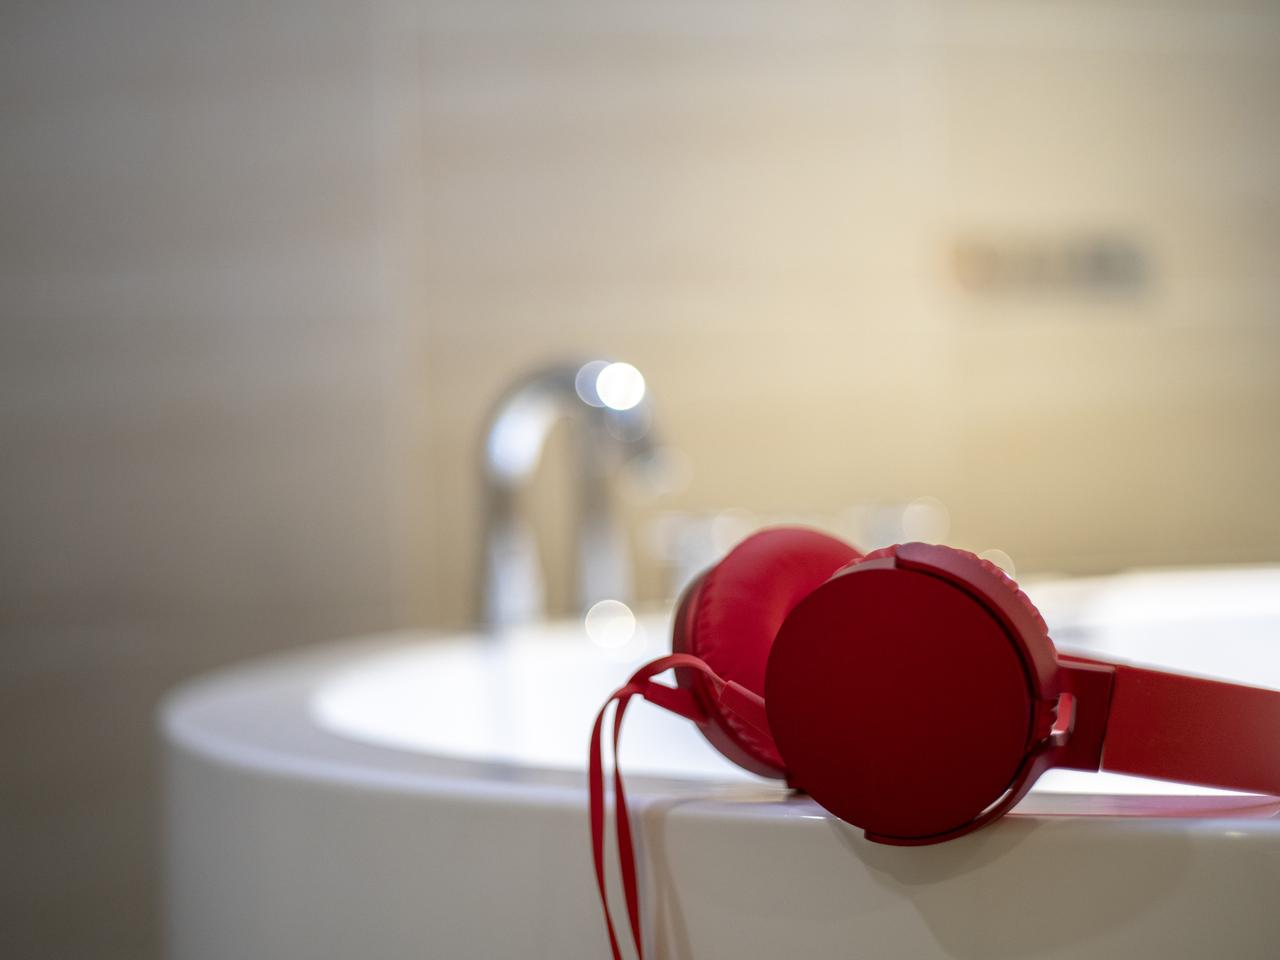 Headphones sit on the edge of a sink.